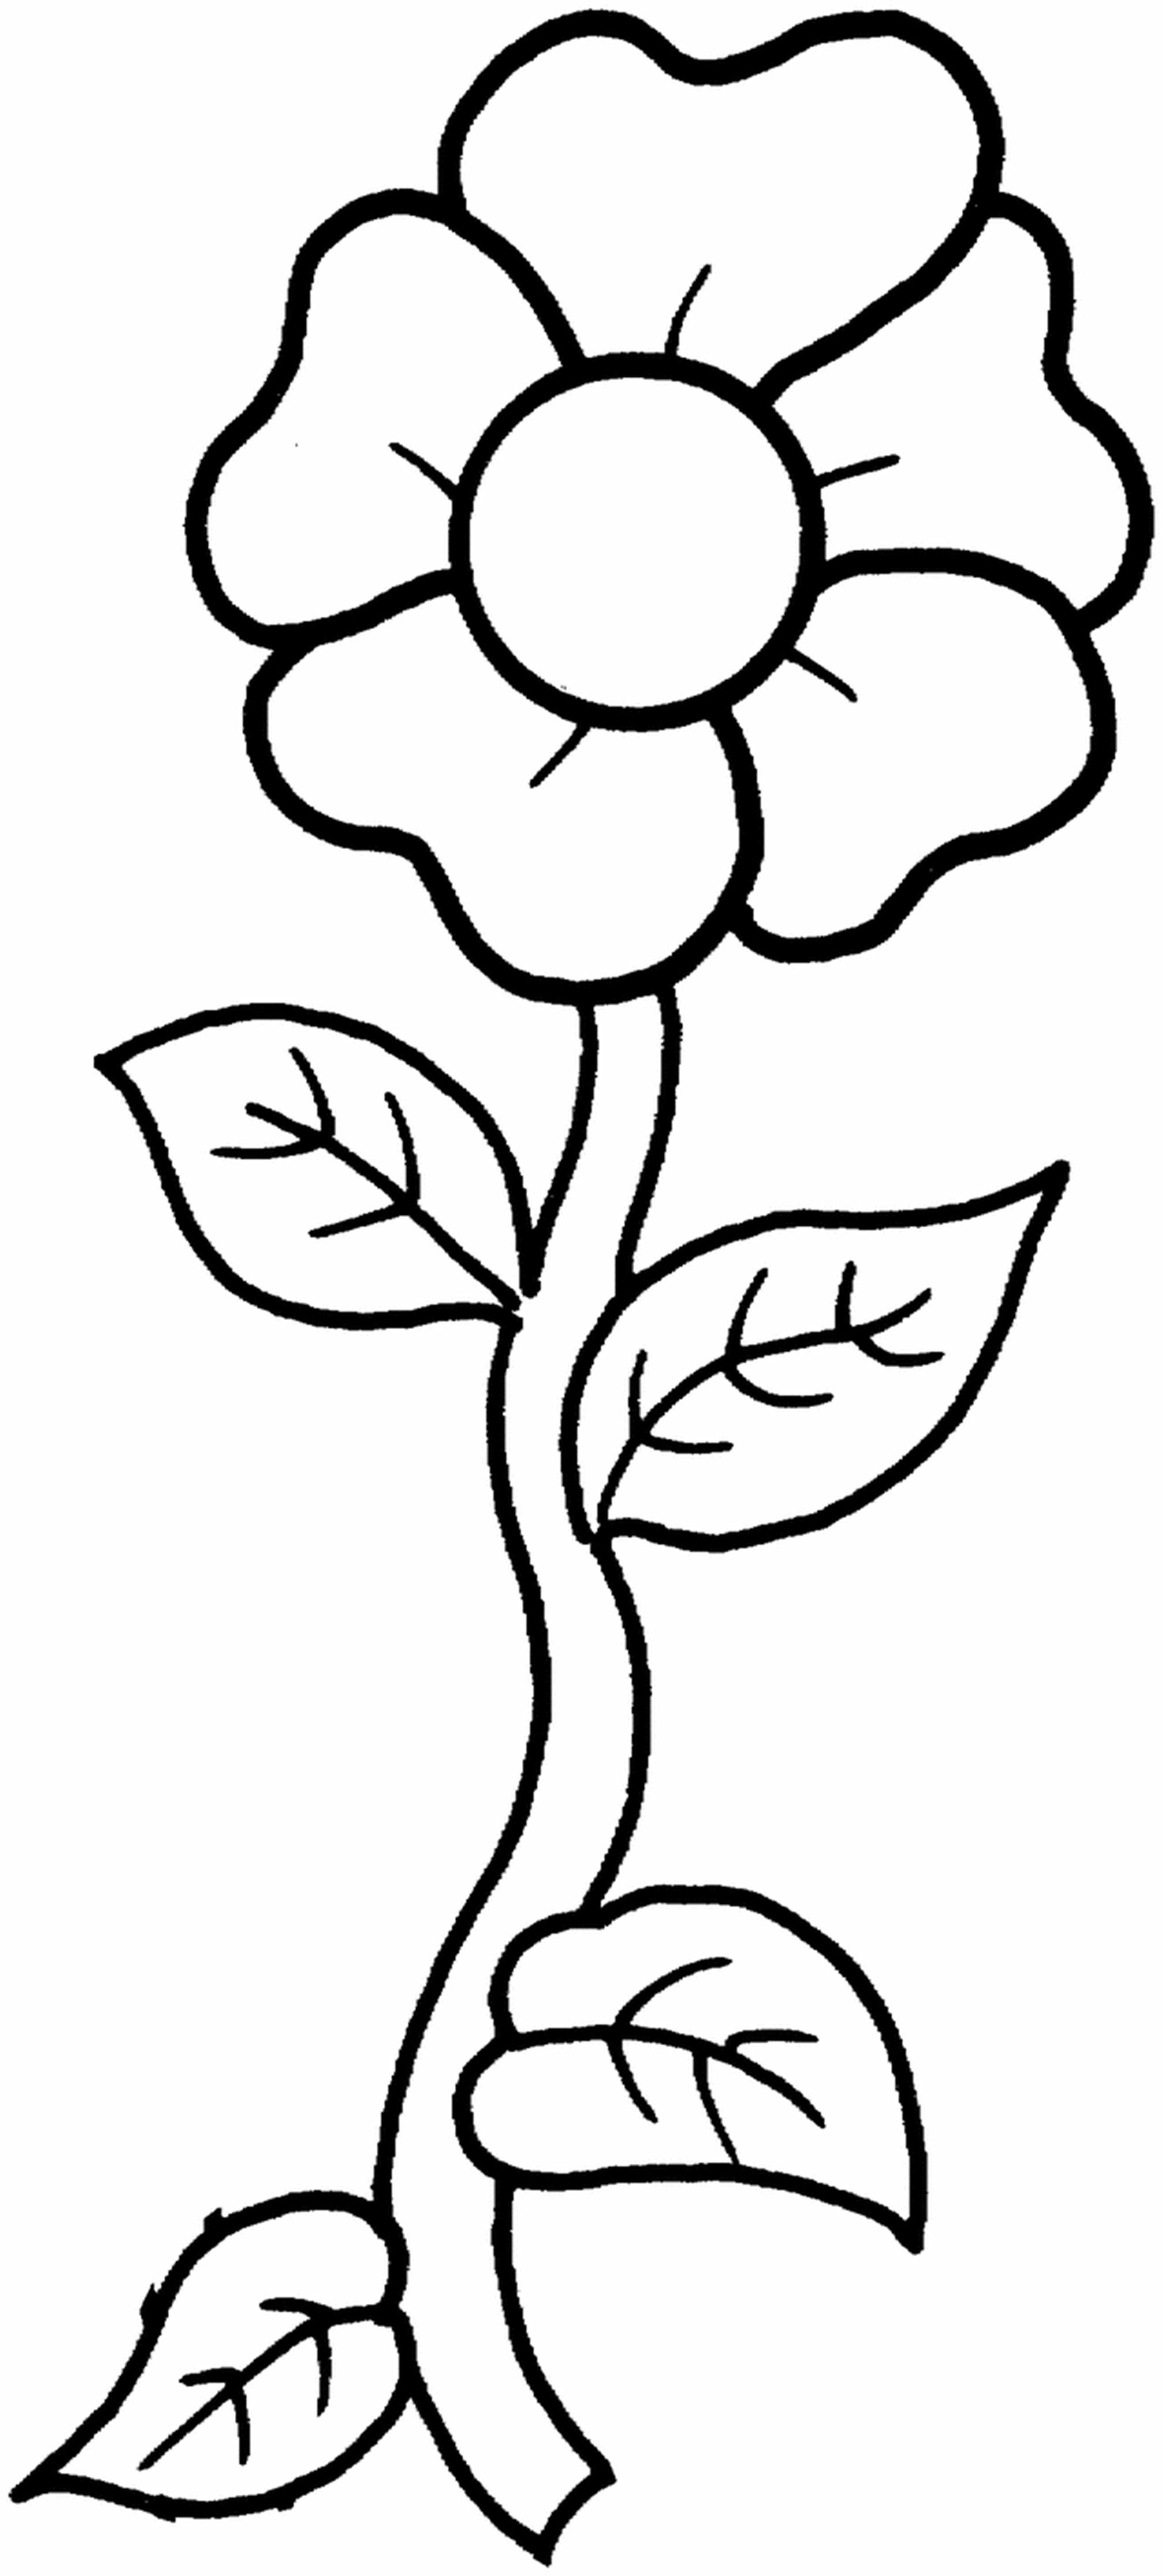 Best ideas about Free Coloring Pages To Print For Kids . Save or Pin Free Printable Flower Coloring Pages For Kids Best Now.